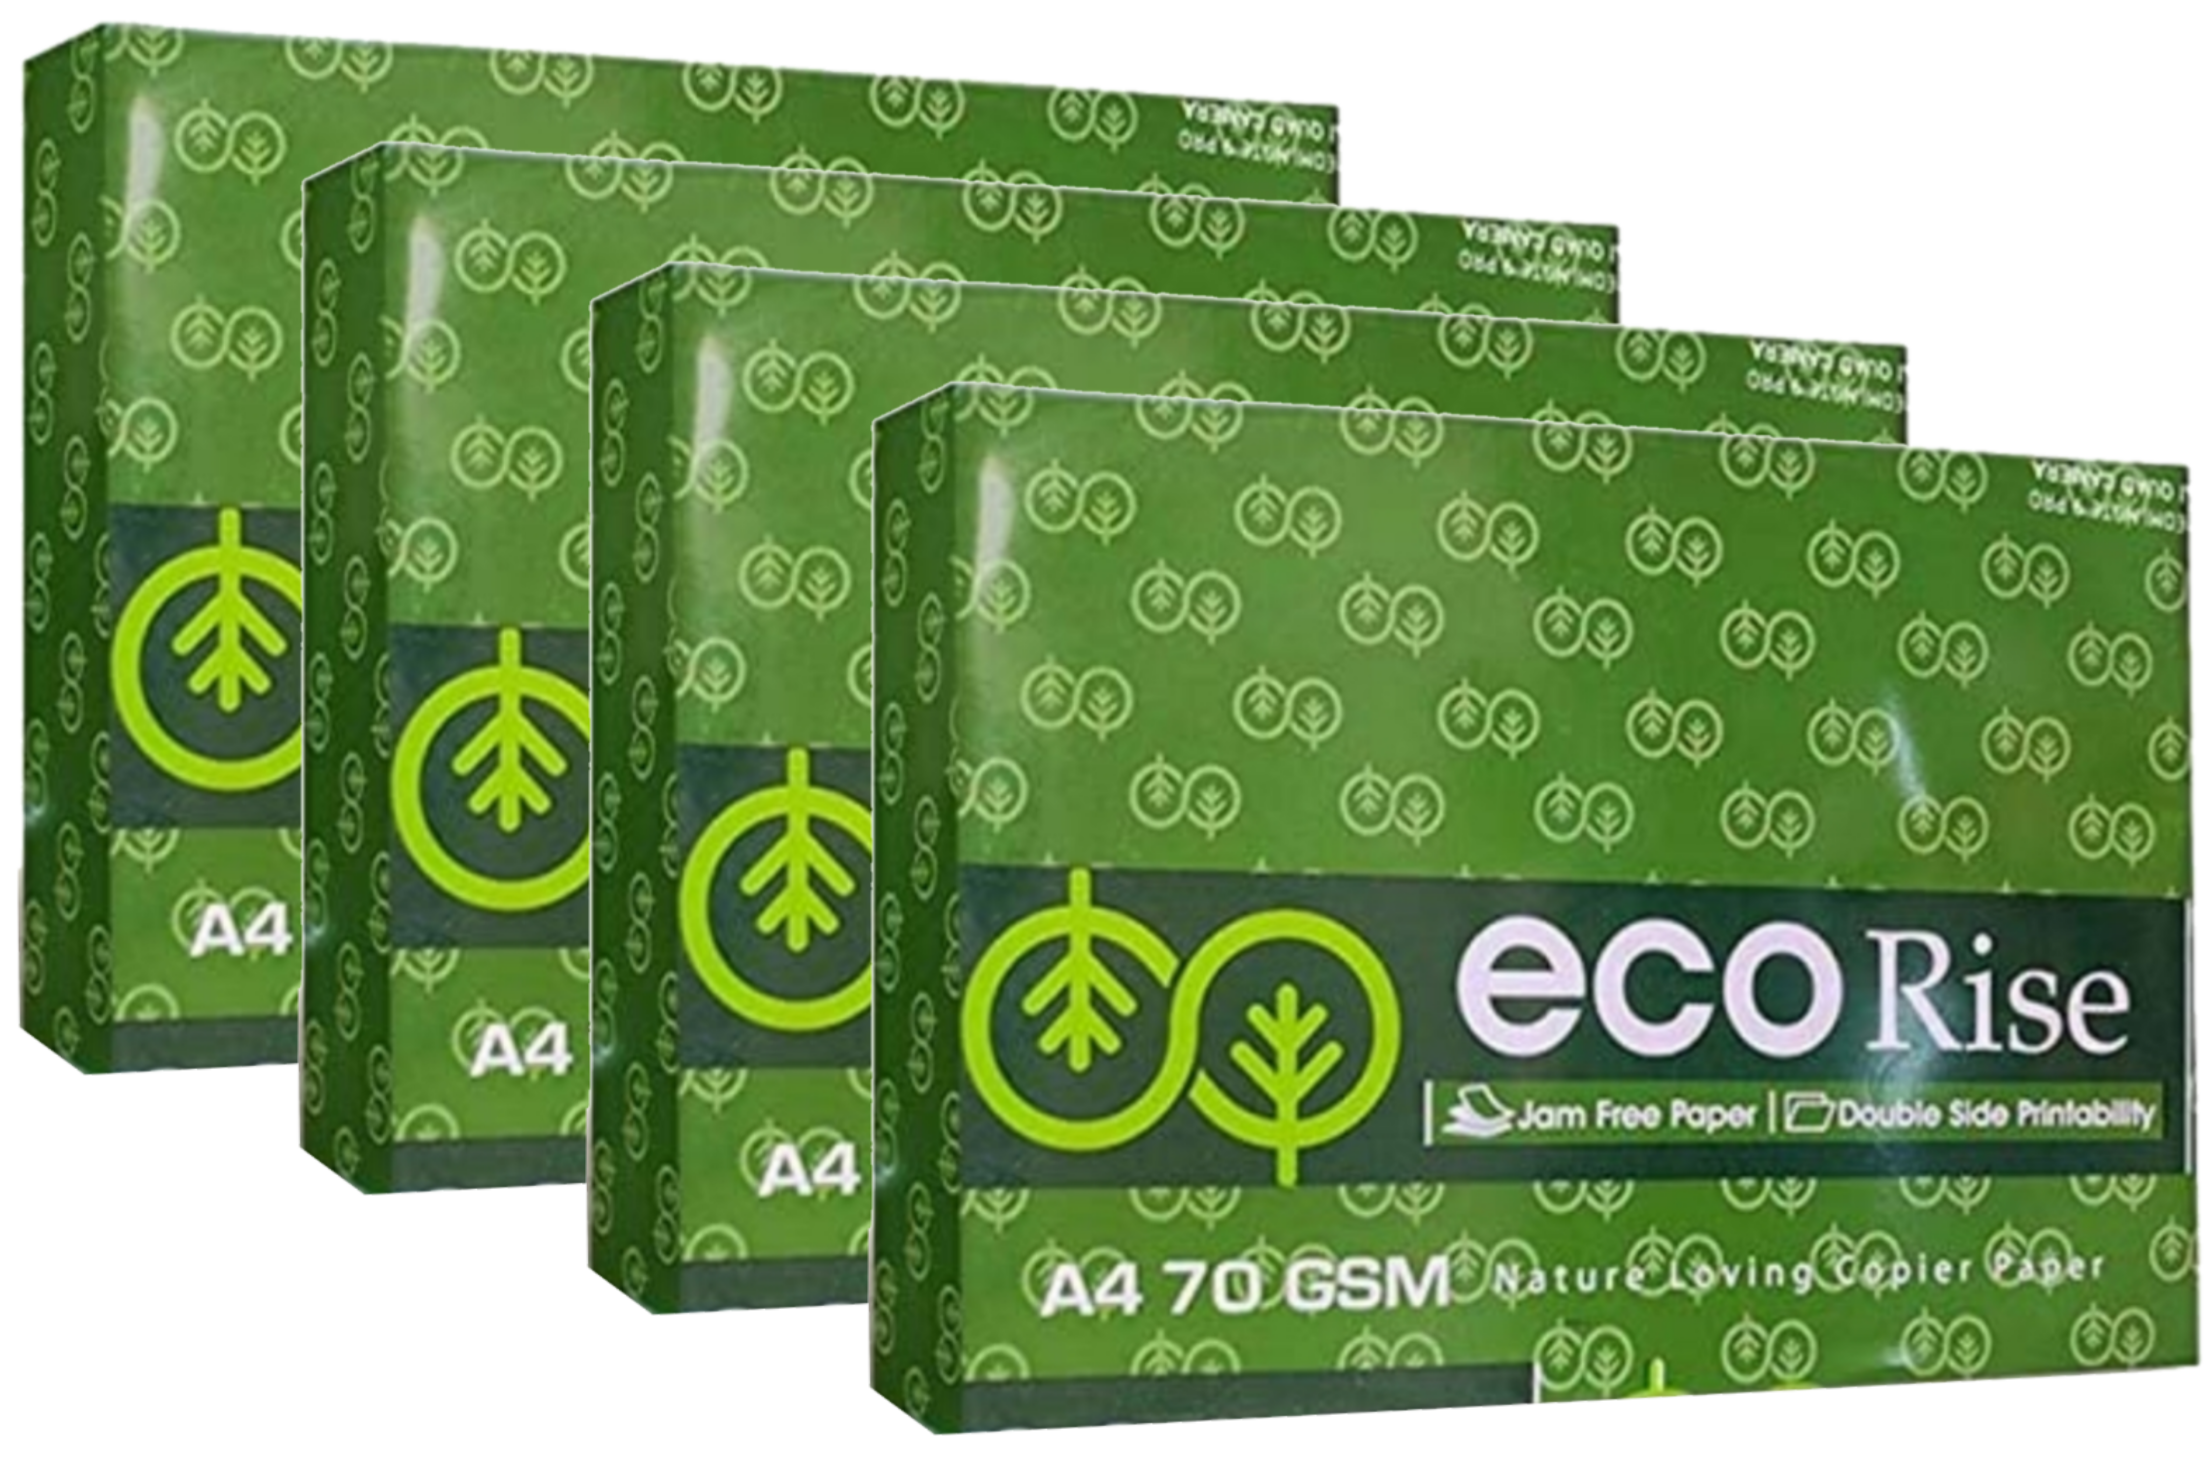 Eco Rise Printing Copy A4 Size JK Paper Eco Tree Friendly 70 GSM 500 Sheet Pack of  4